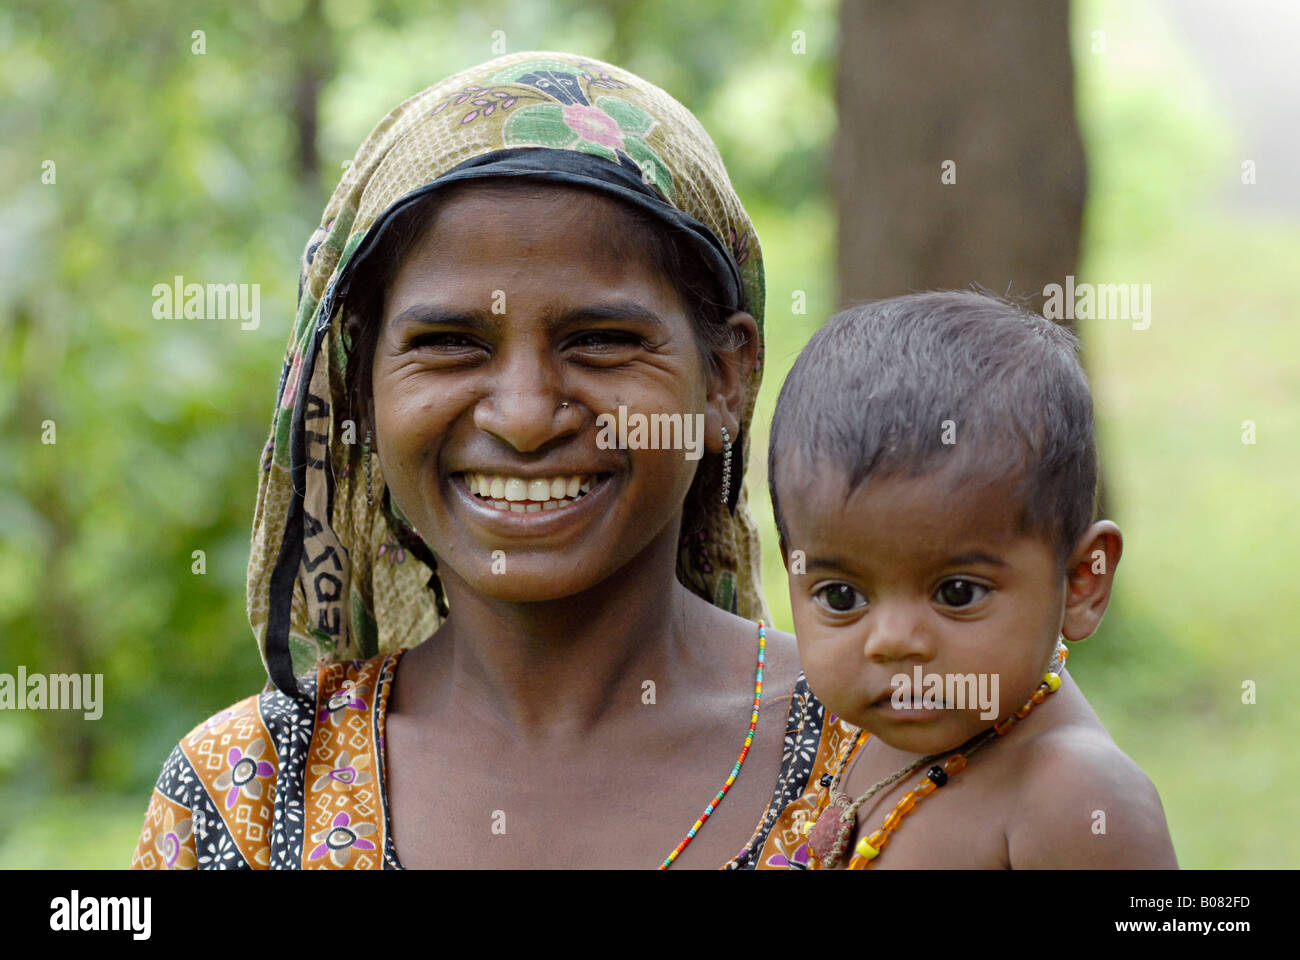 mother child relationship in india